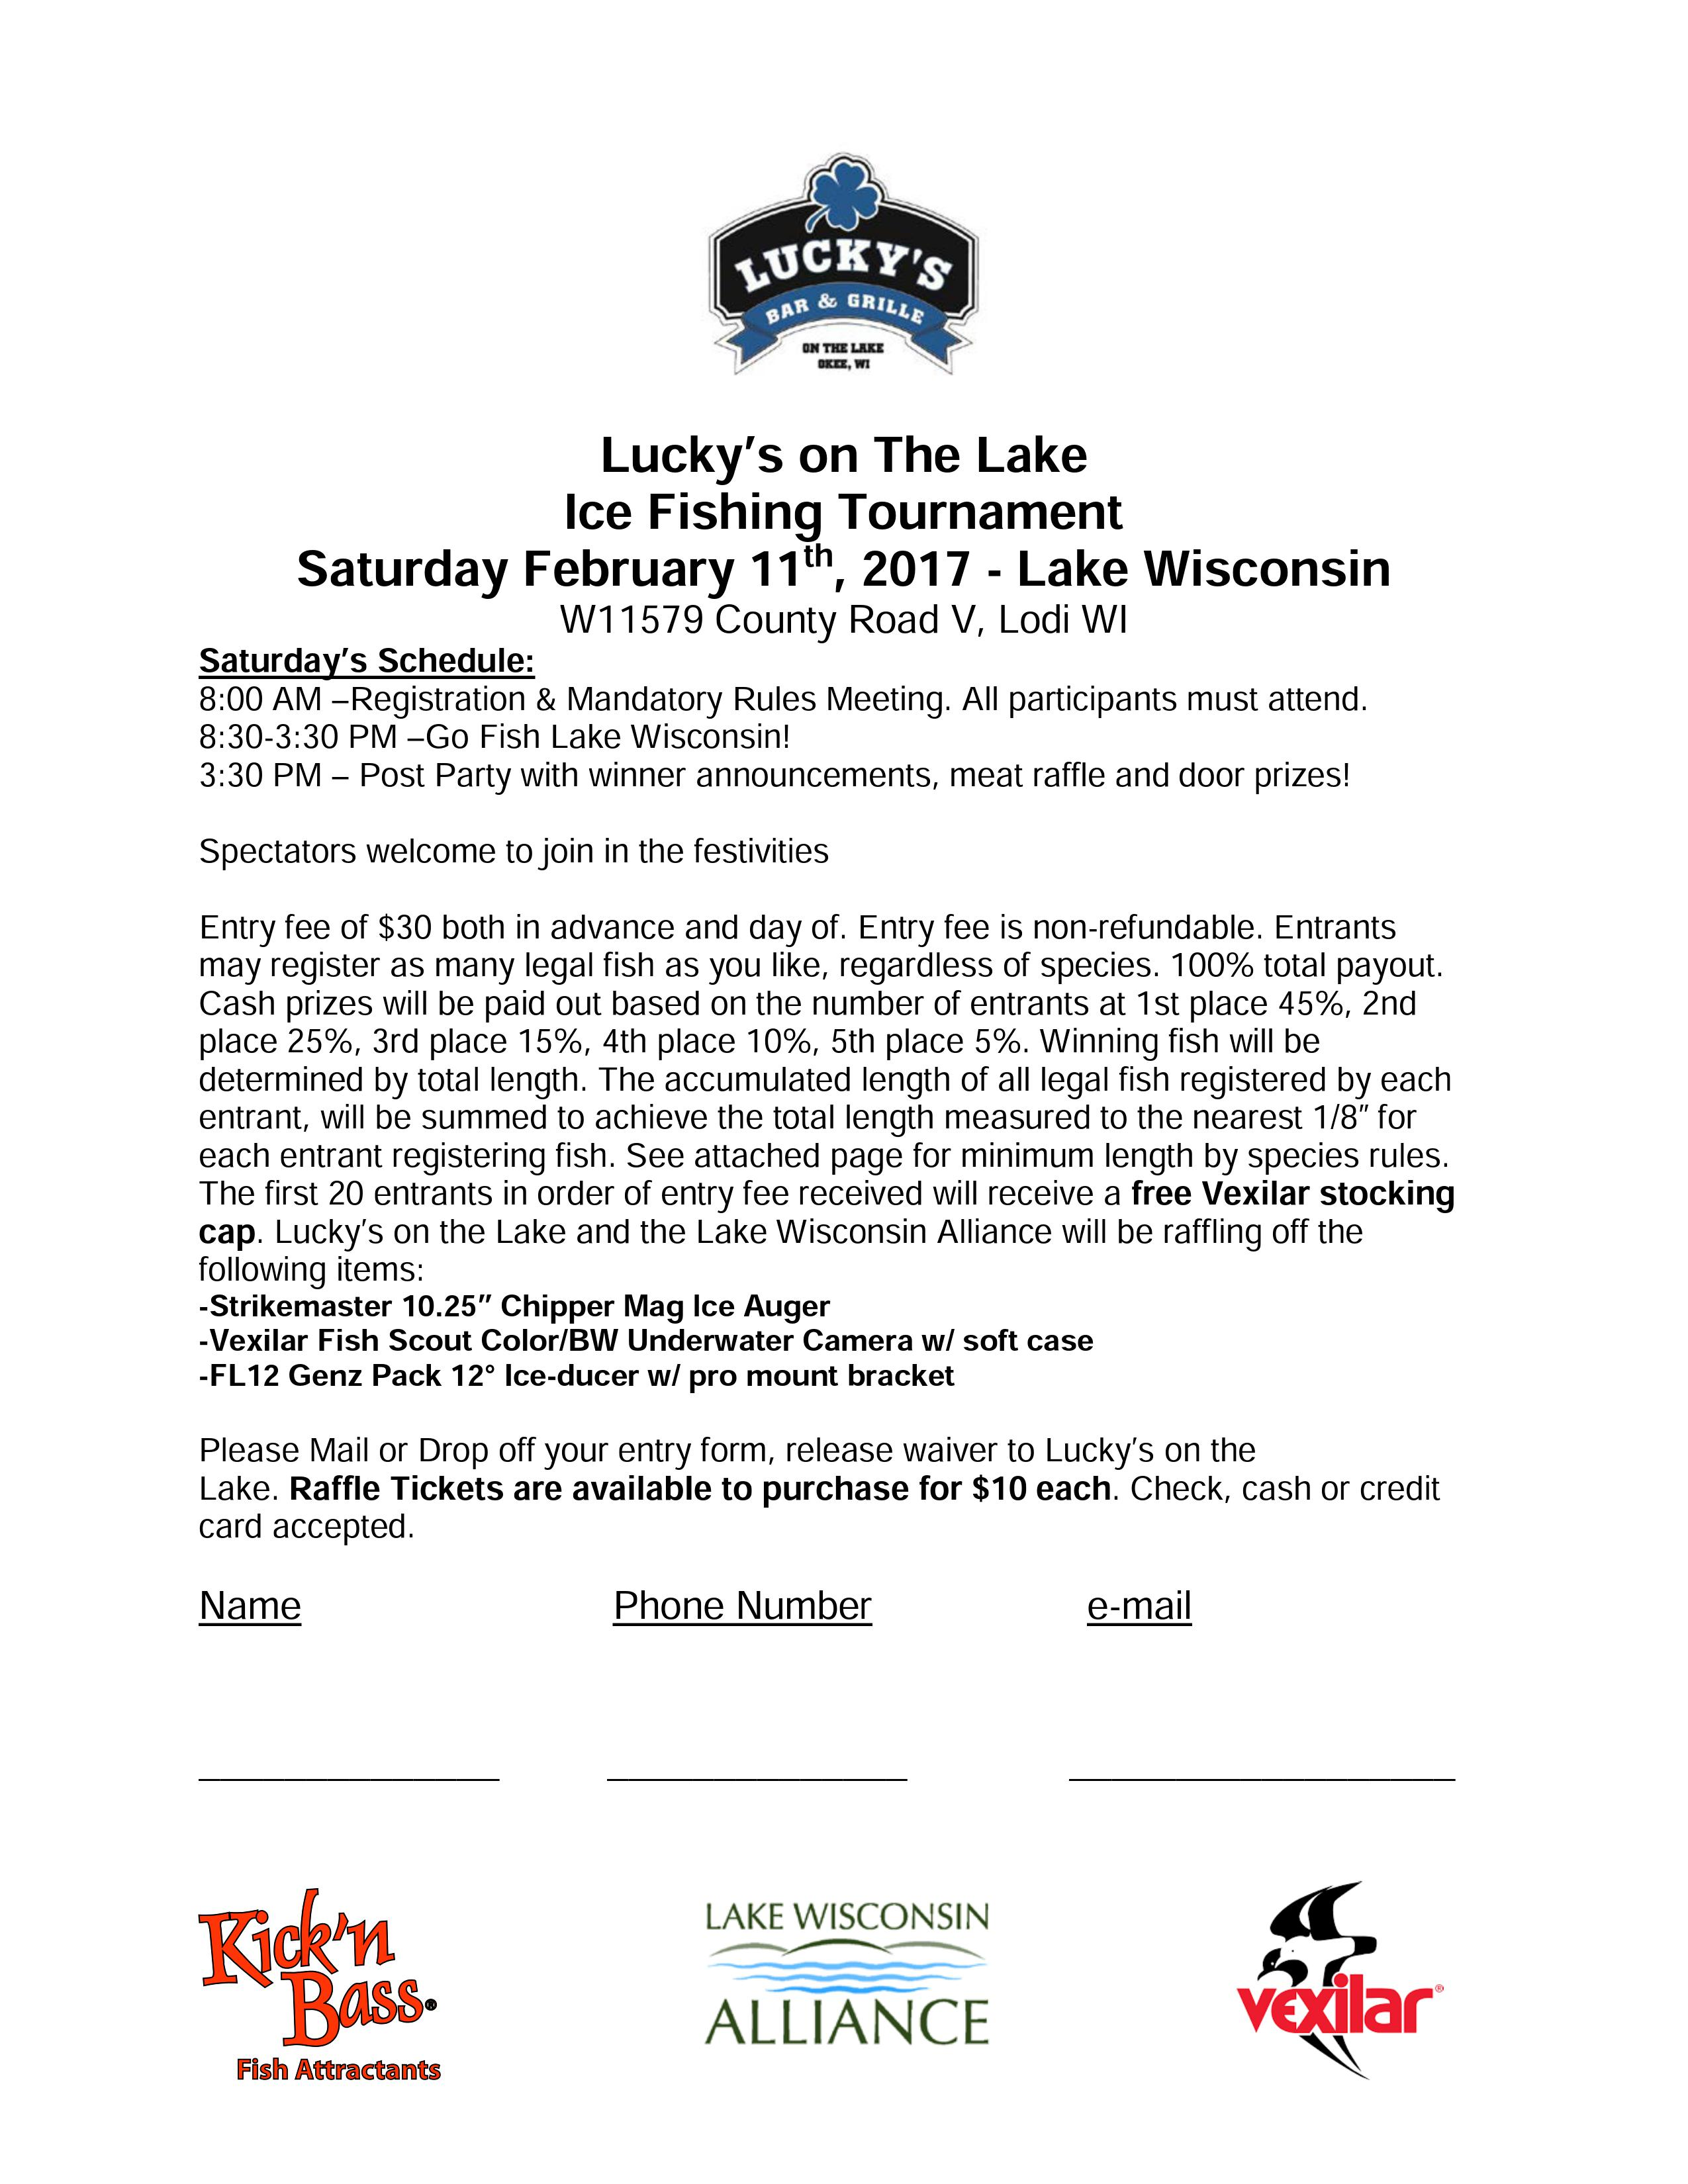 Lucky's on the Lake Ice Fishing Tournament